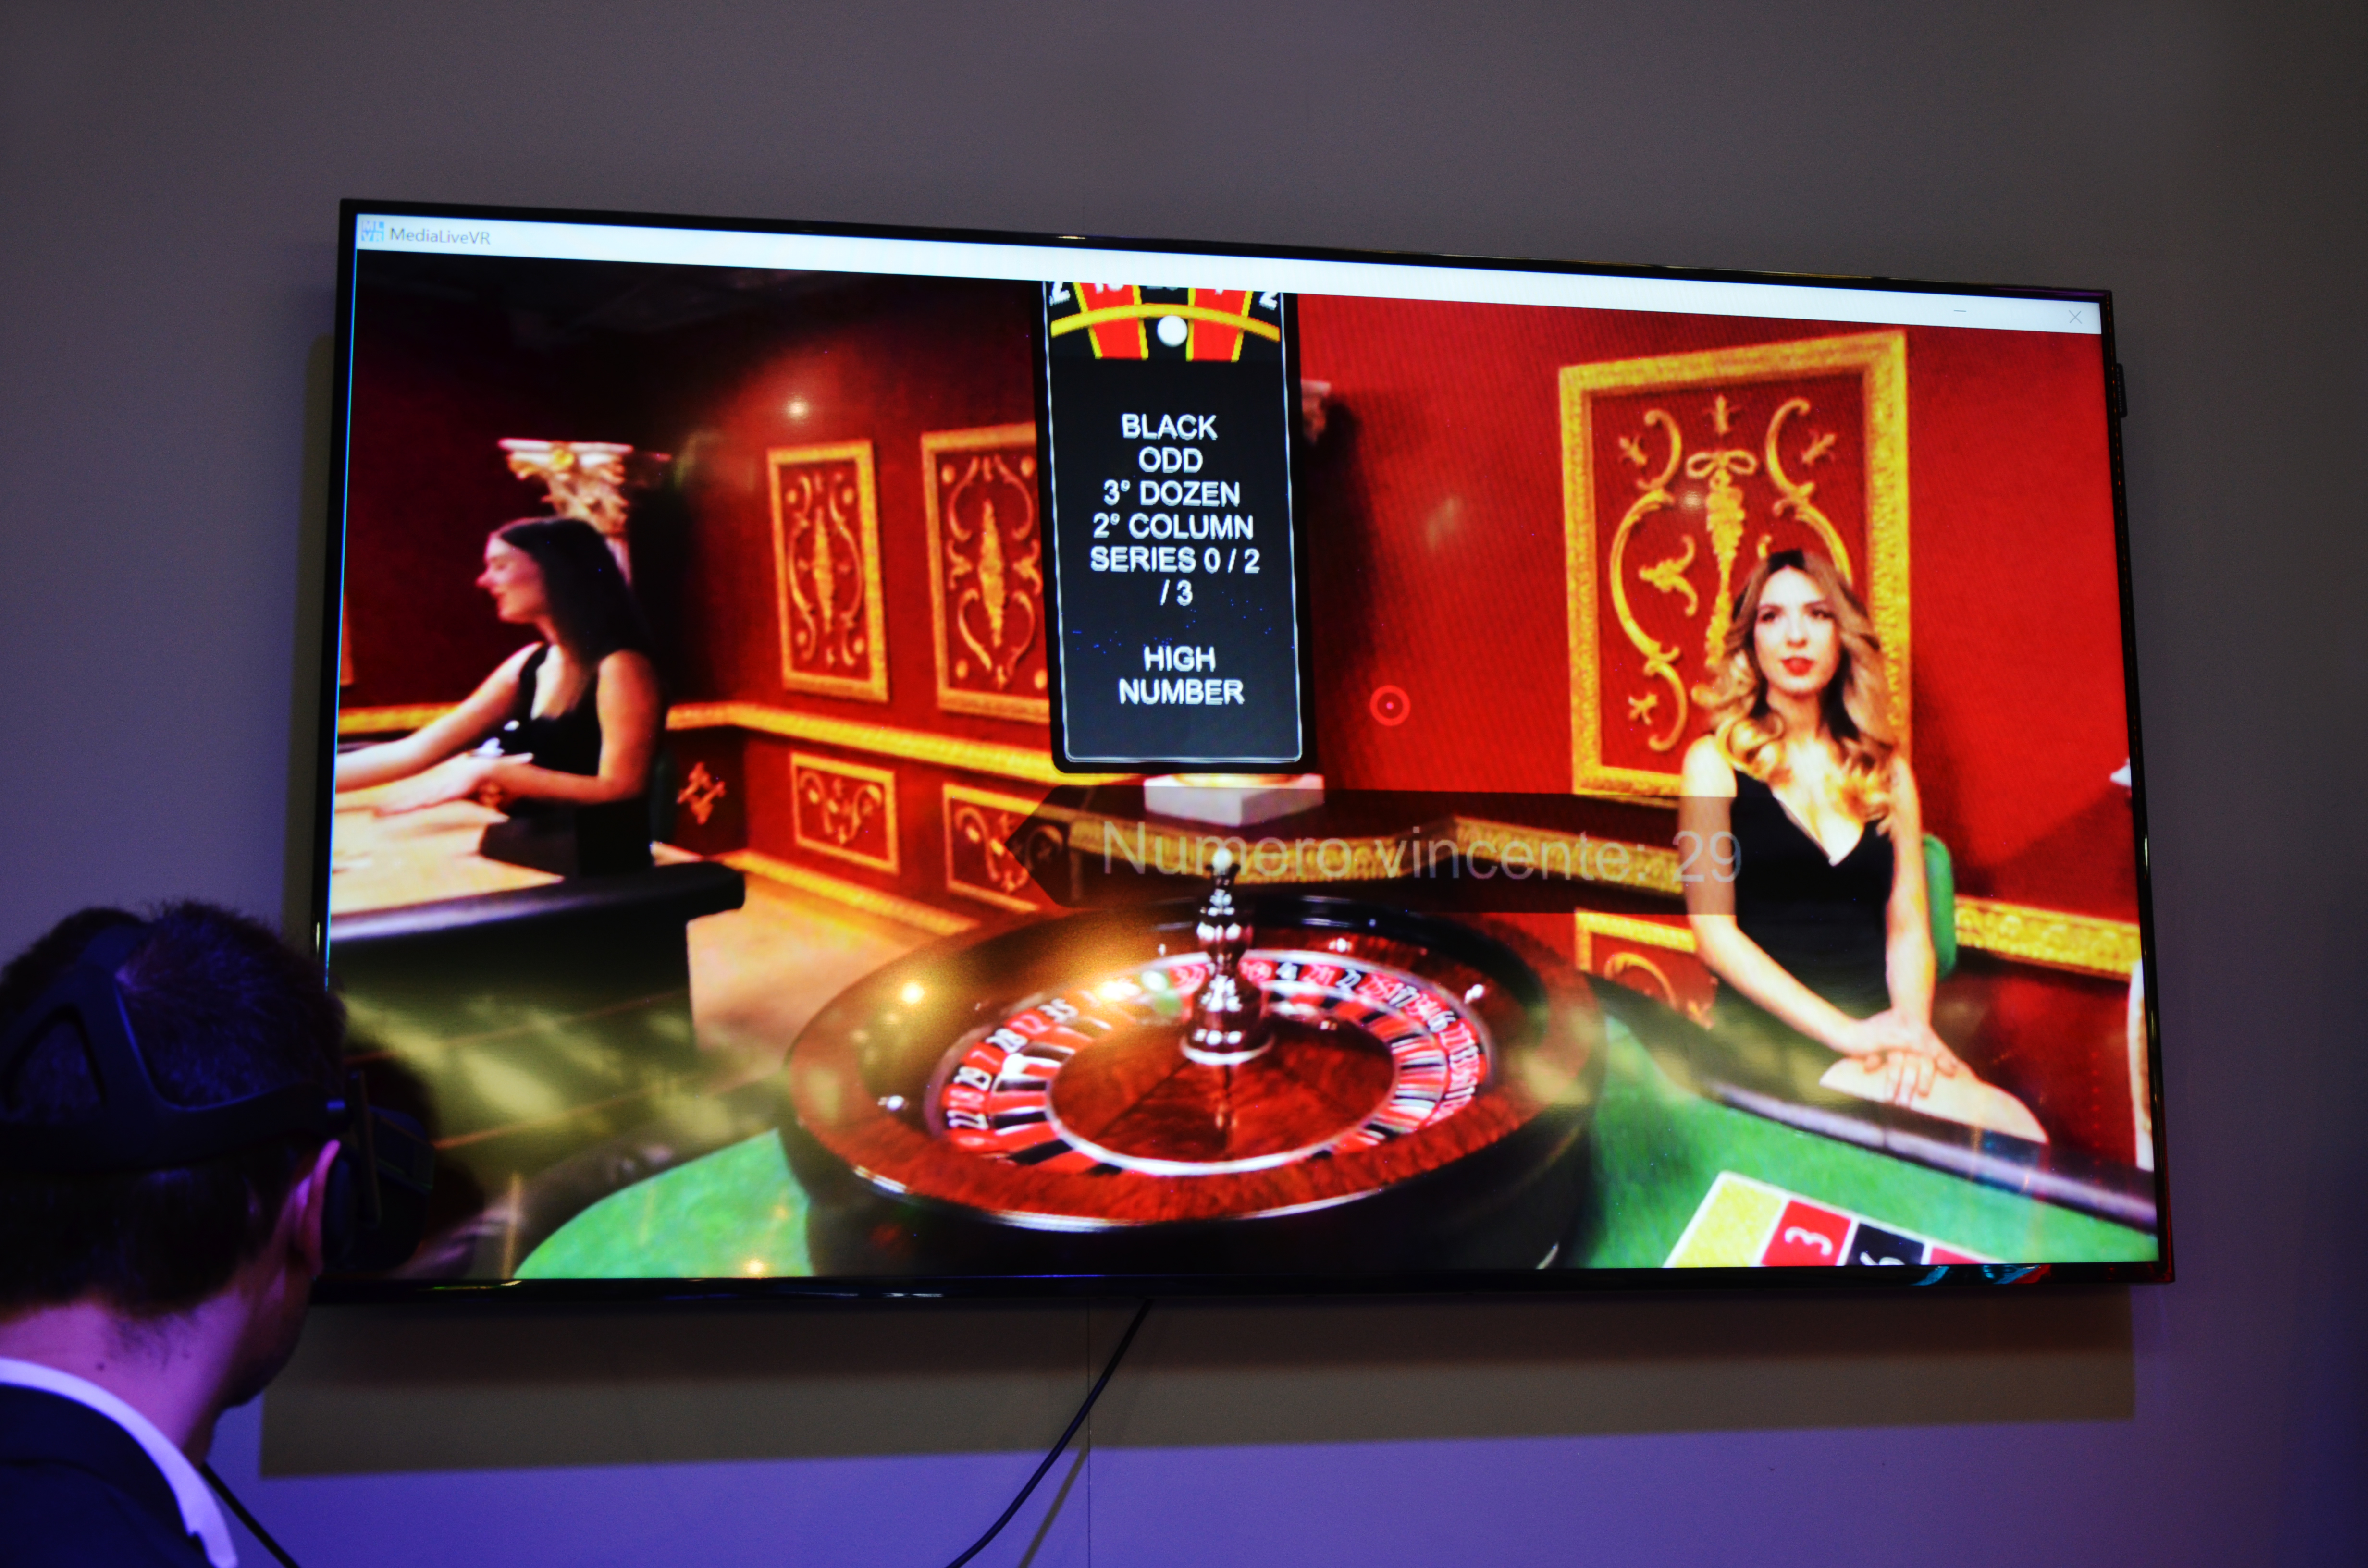 roulette-vr-medialivecasino-game-table-tv-visore